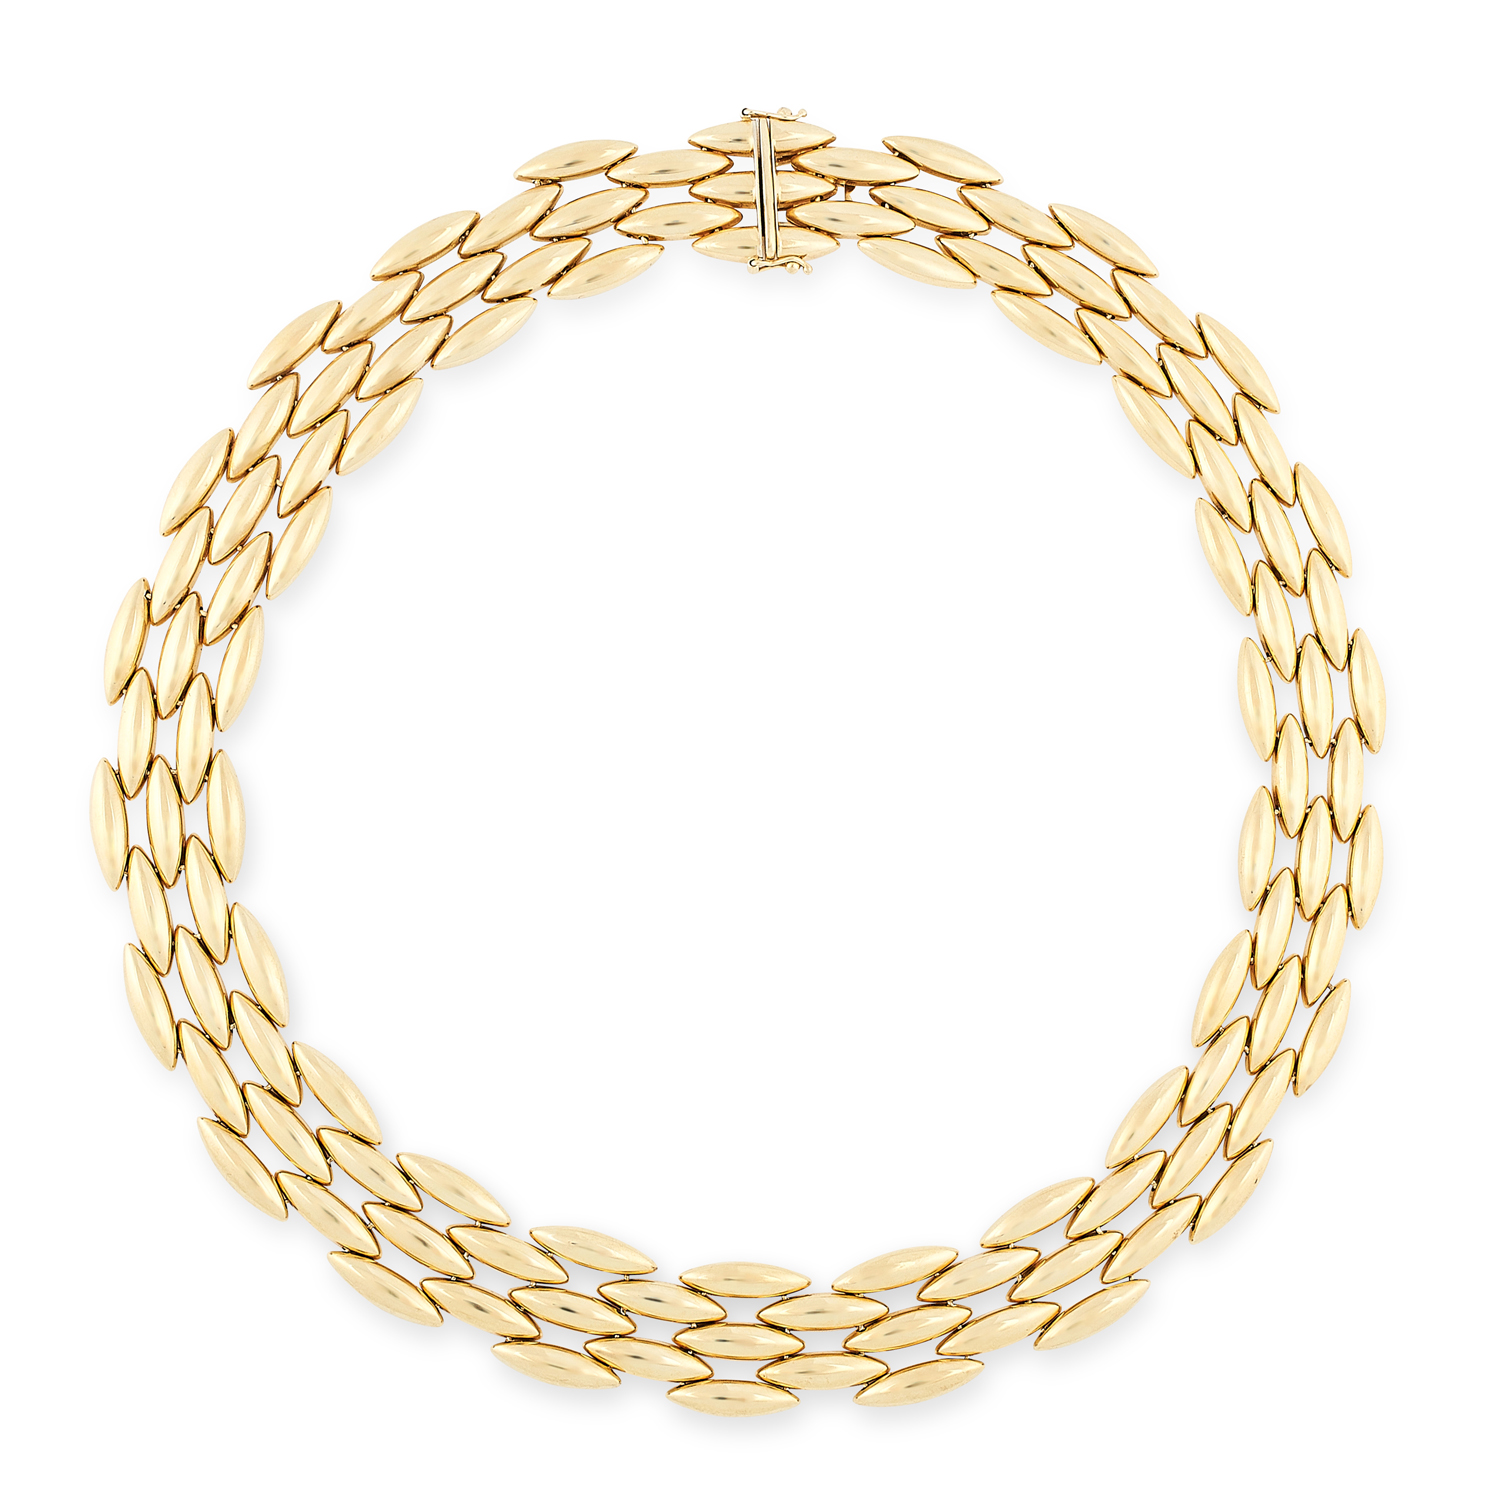 A VINTAGE GENTIANE NECKLACE, CARTIER in 18ct yellow gold, comprising rows of alternating articulated - Image 2 of 4